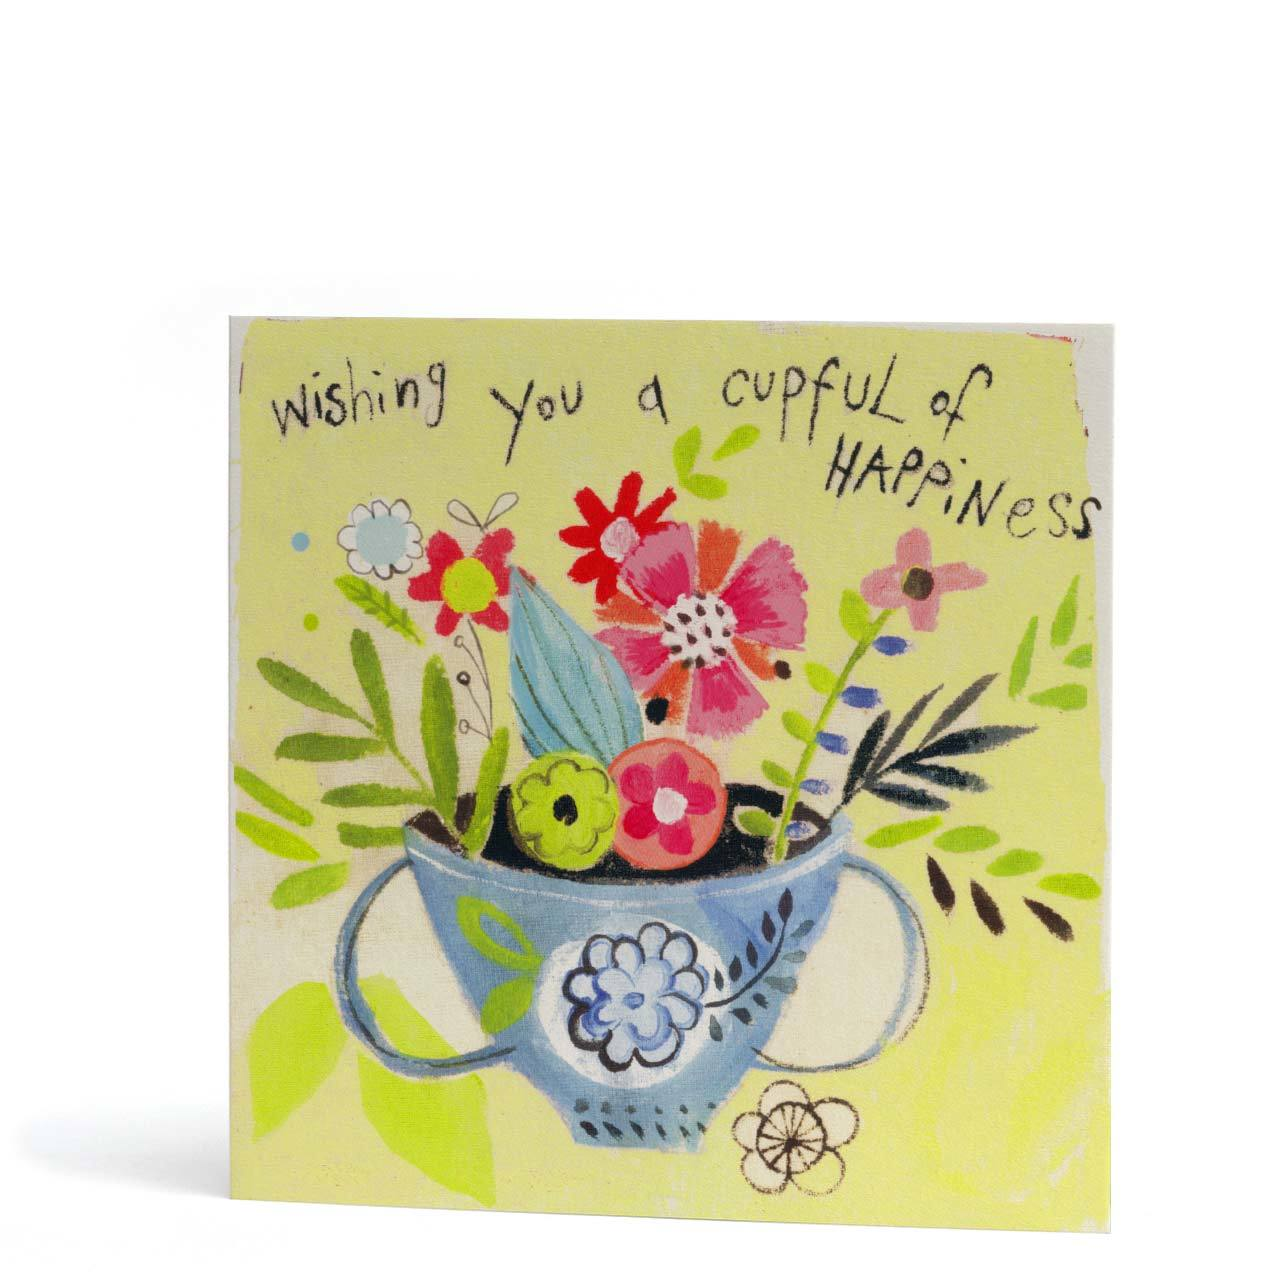 Wishing You a Cupful of Happiness Card